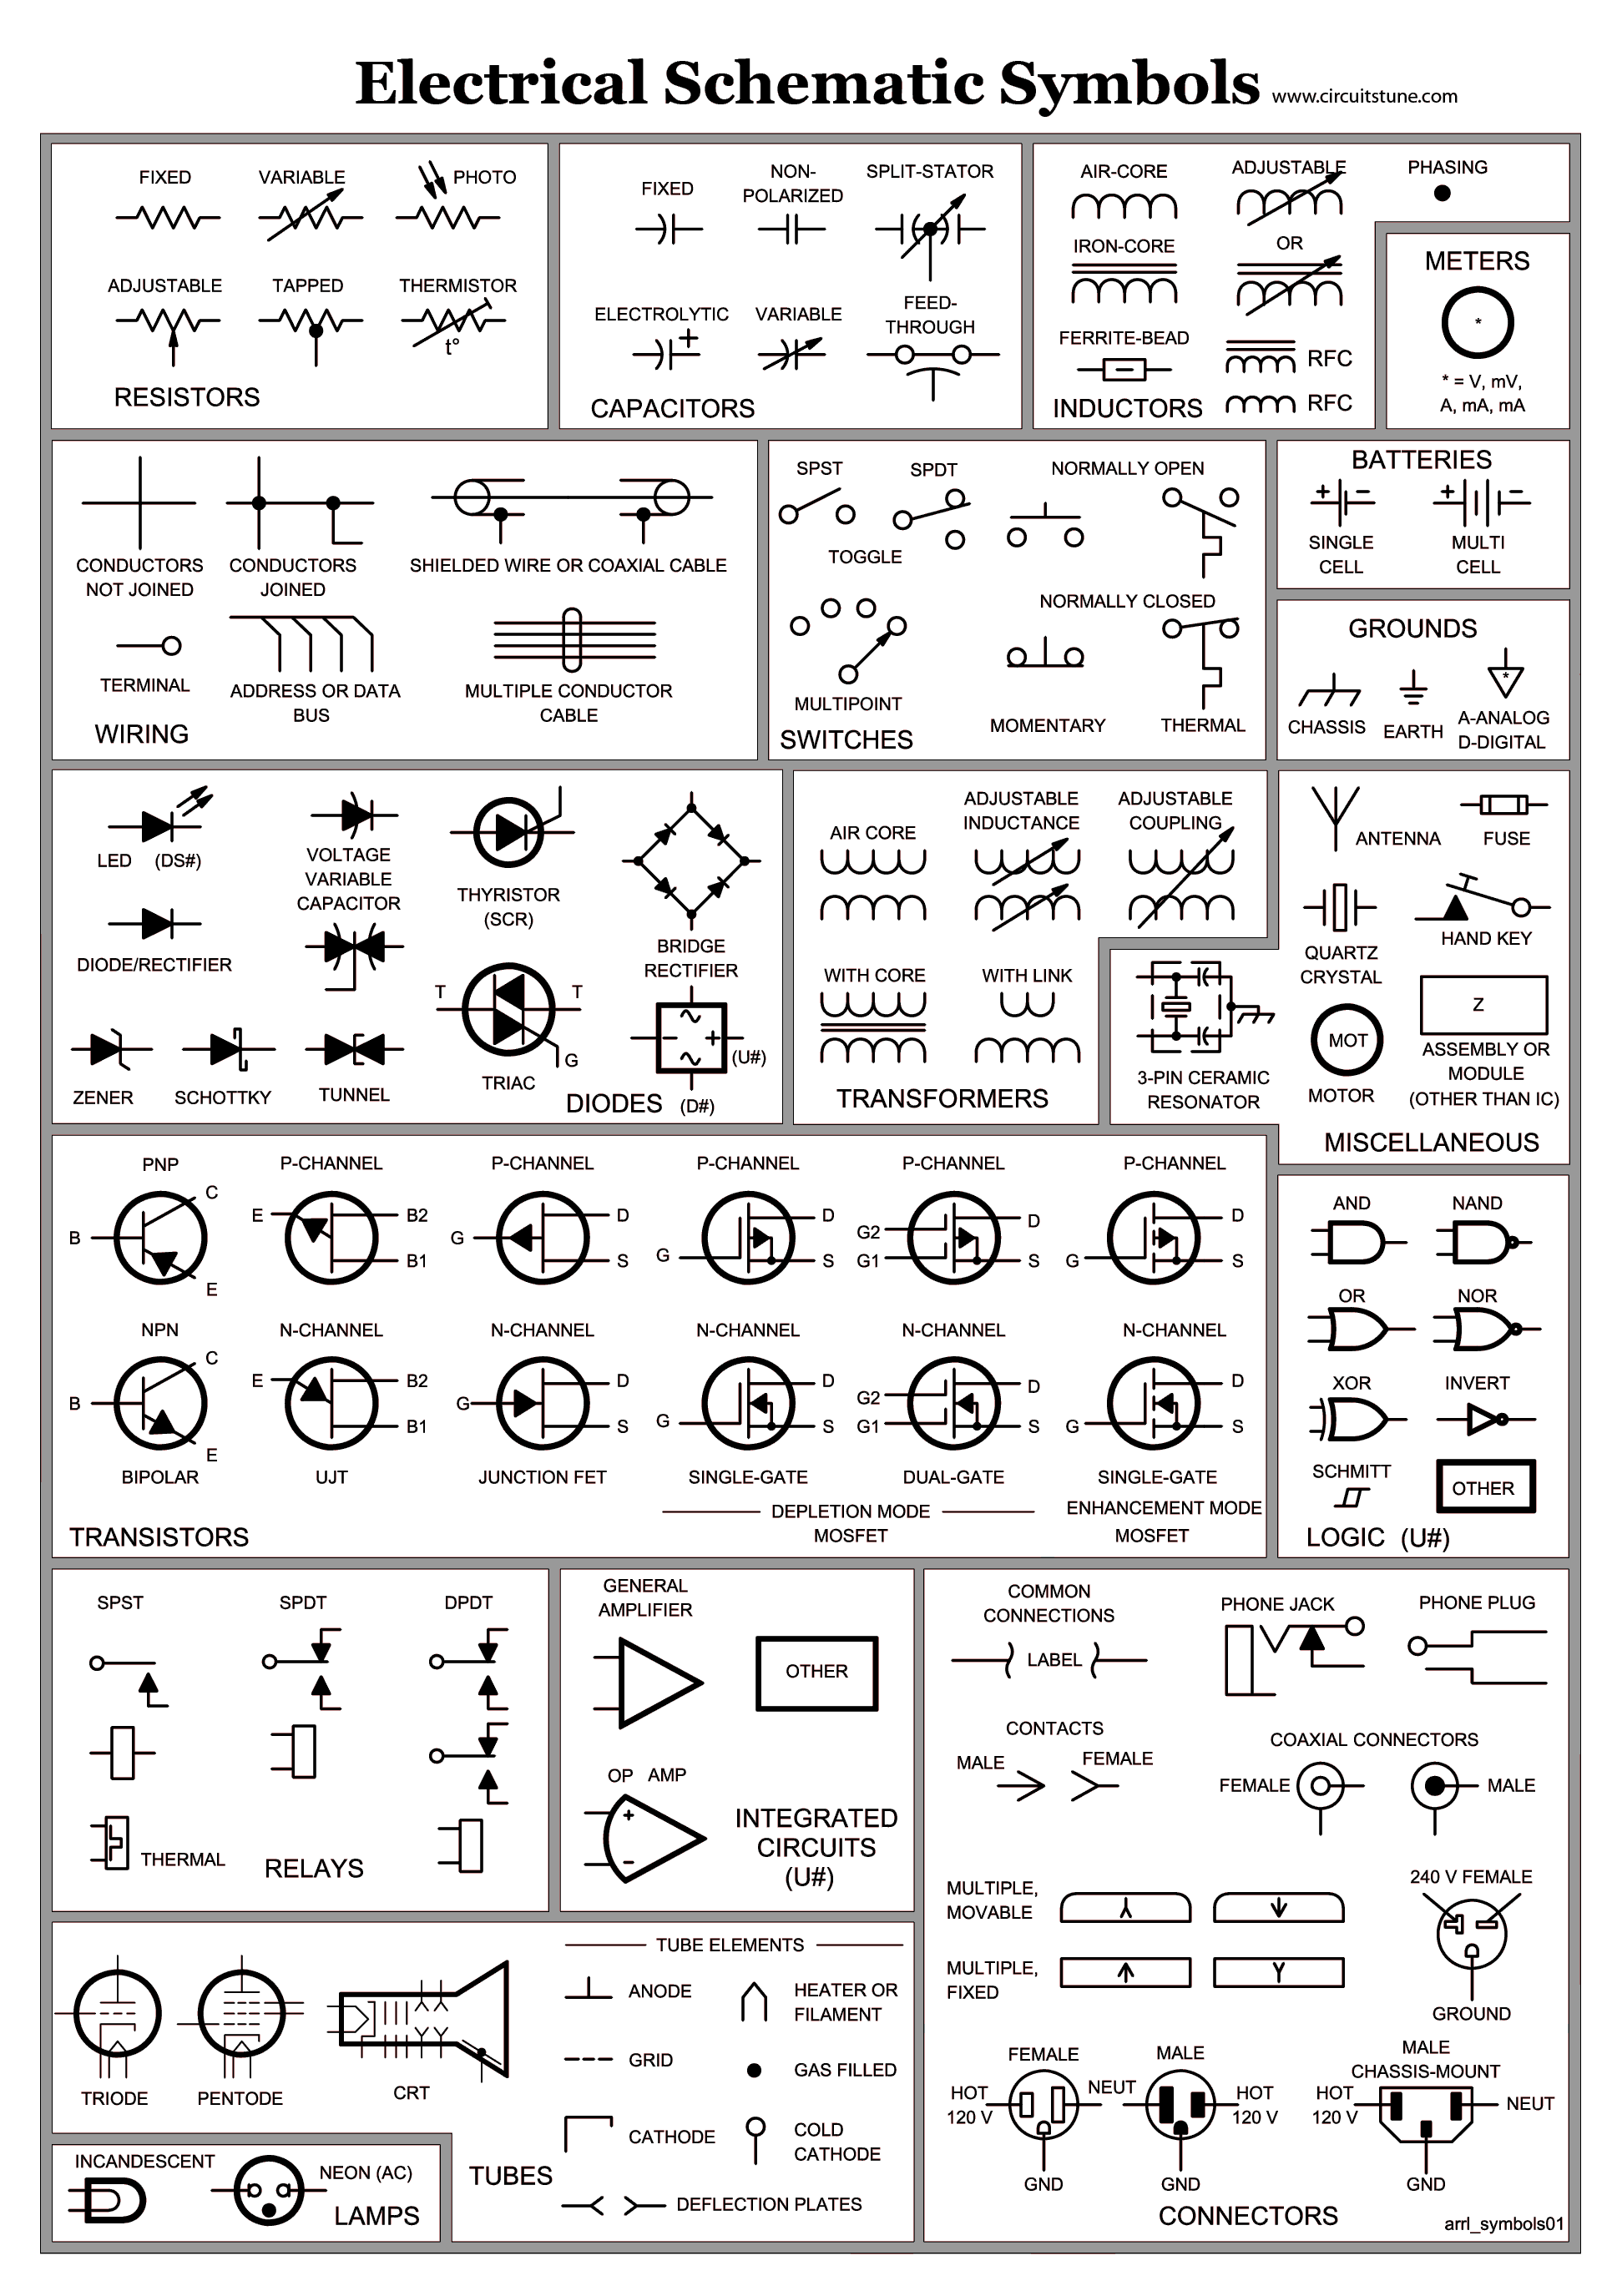 Wiring Schematic Symbols And Meanings Detailed Wiring Diagrams DC To AC Wiring  Diagram Dc Wiring Diagram Symbols